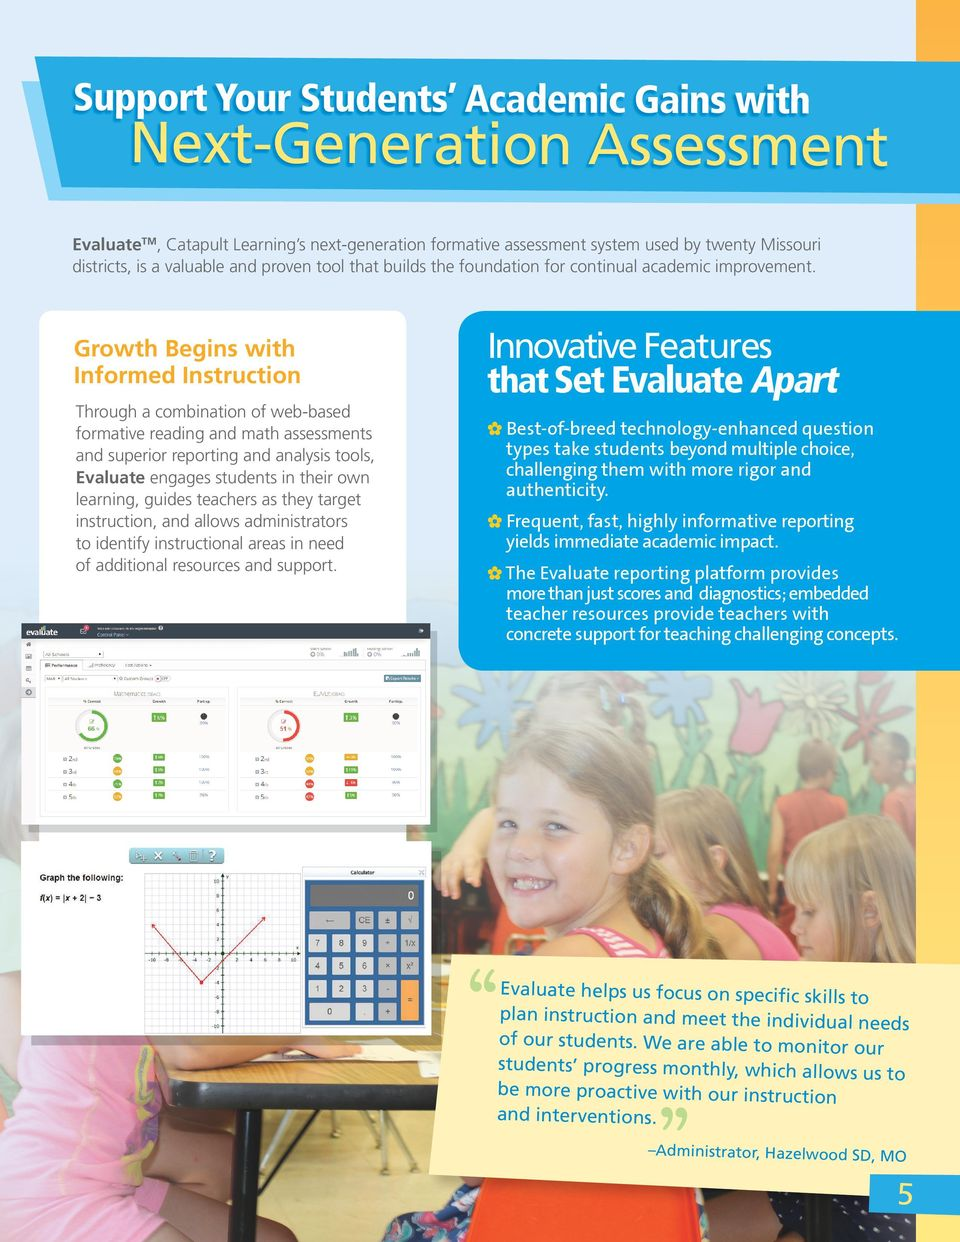 Growth Begins with Informed Instruction Through a combination of web-based formative reading and math assessments and superior reporting and analysis tools, Evaluate engages students in their own